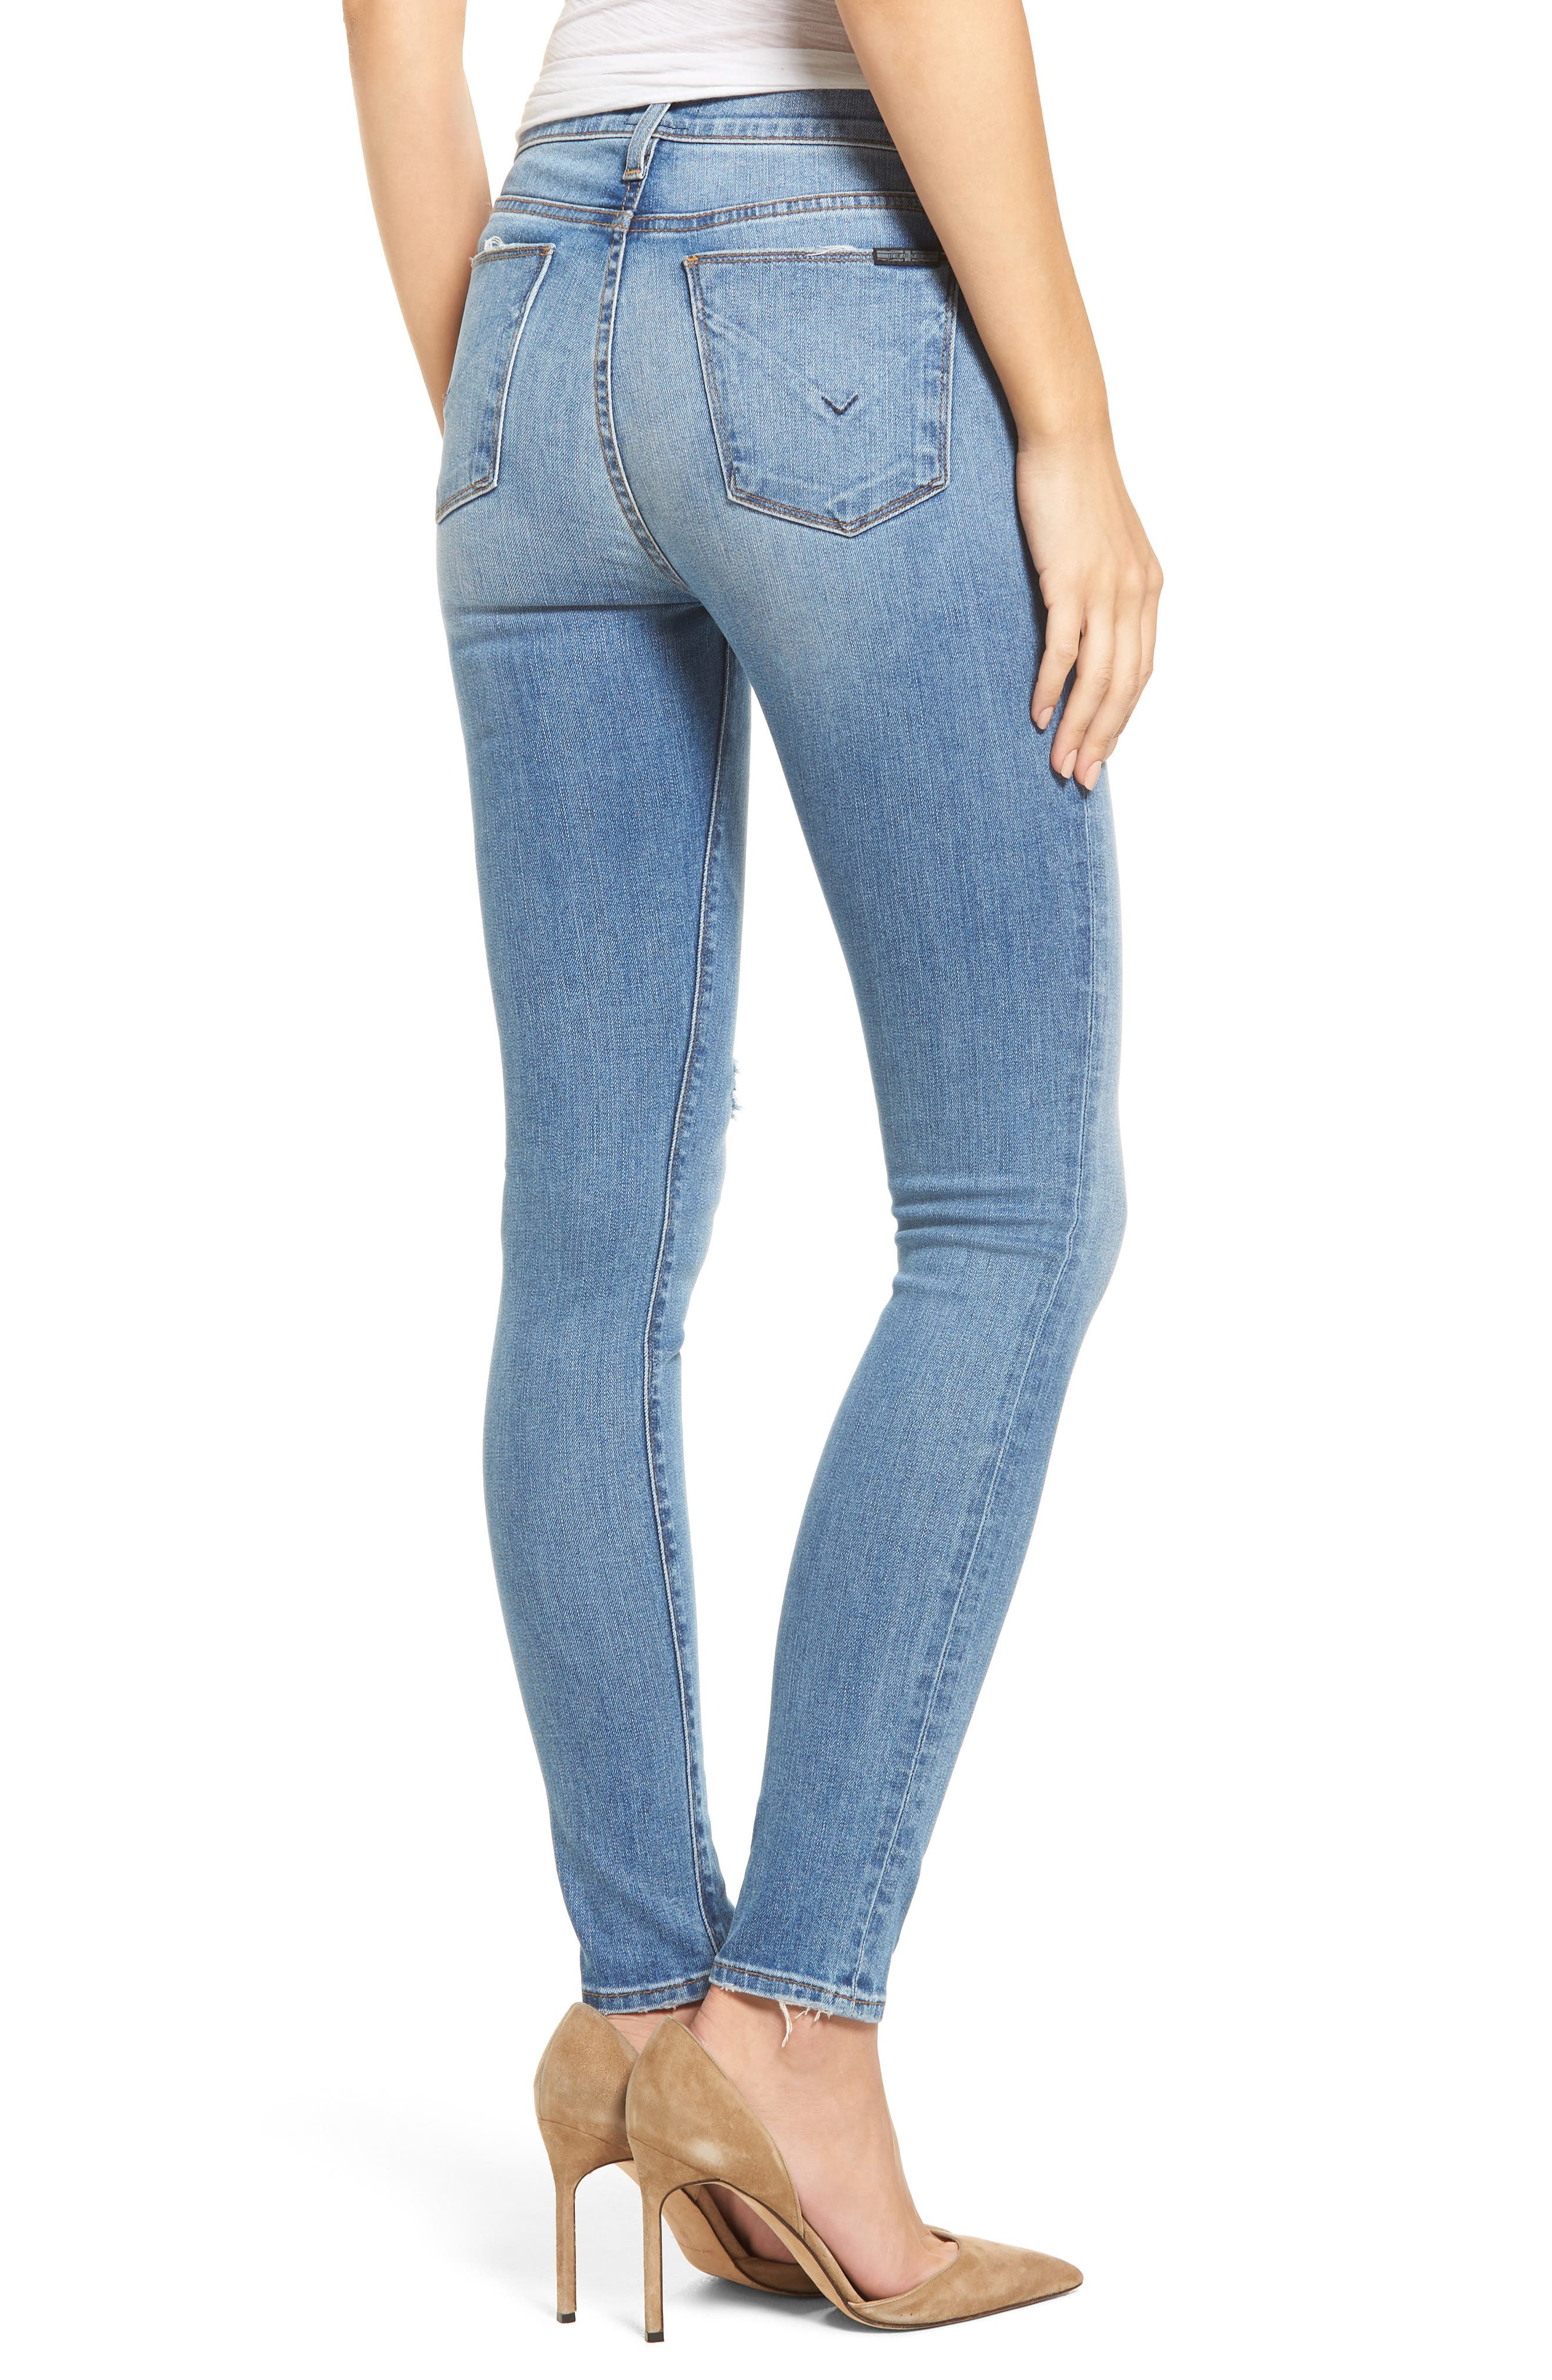 Barbara High Waist Super Skinny Jeans,                             Alternate thumbnail 2, color,                             Movement